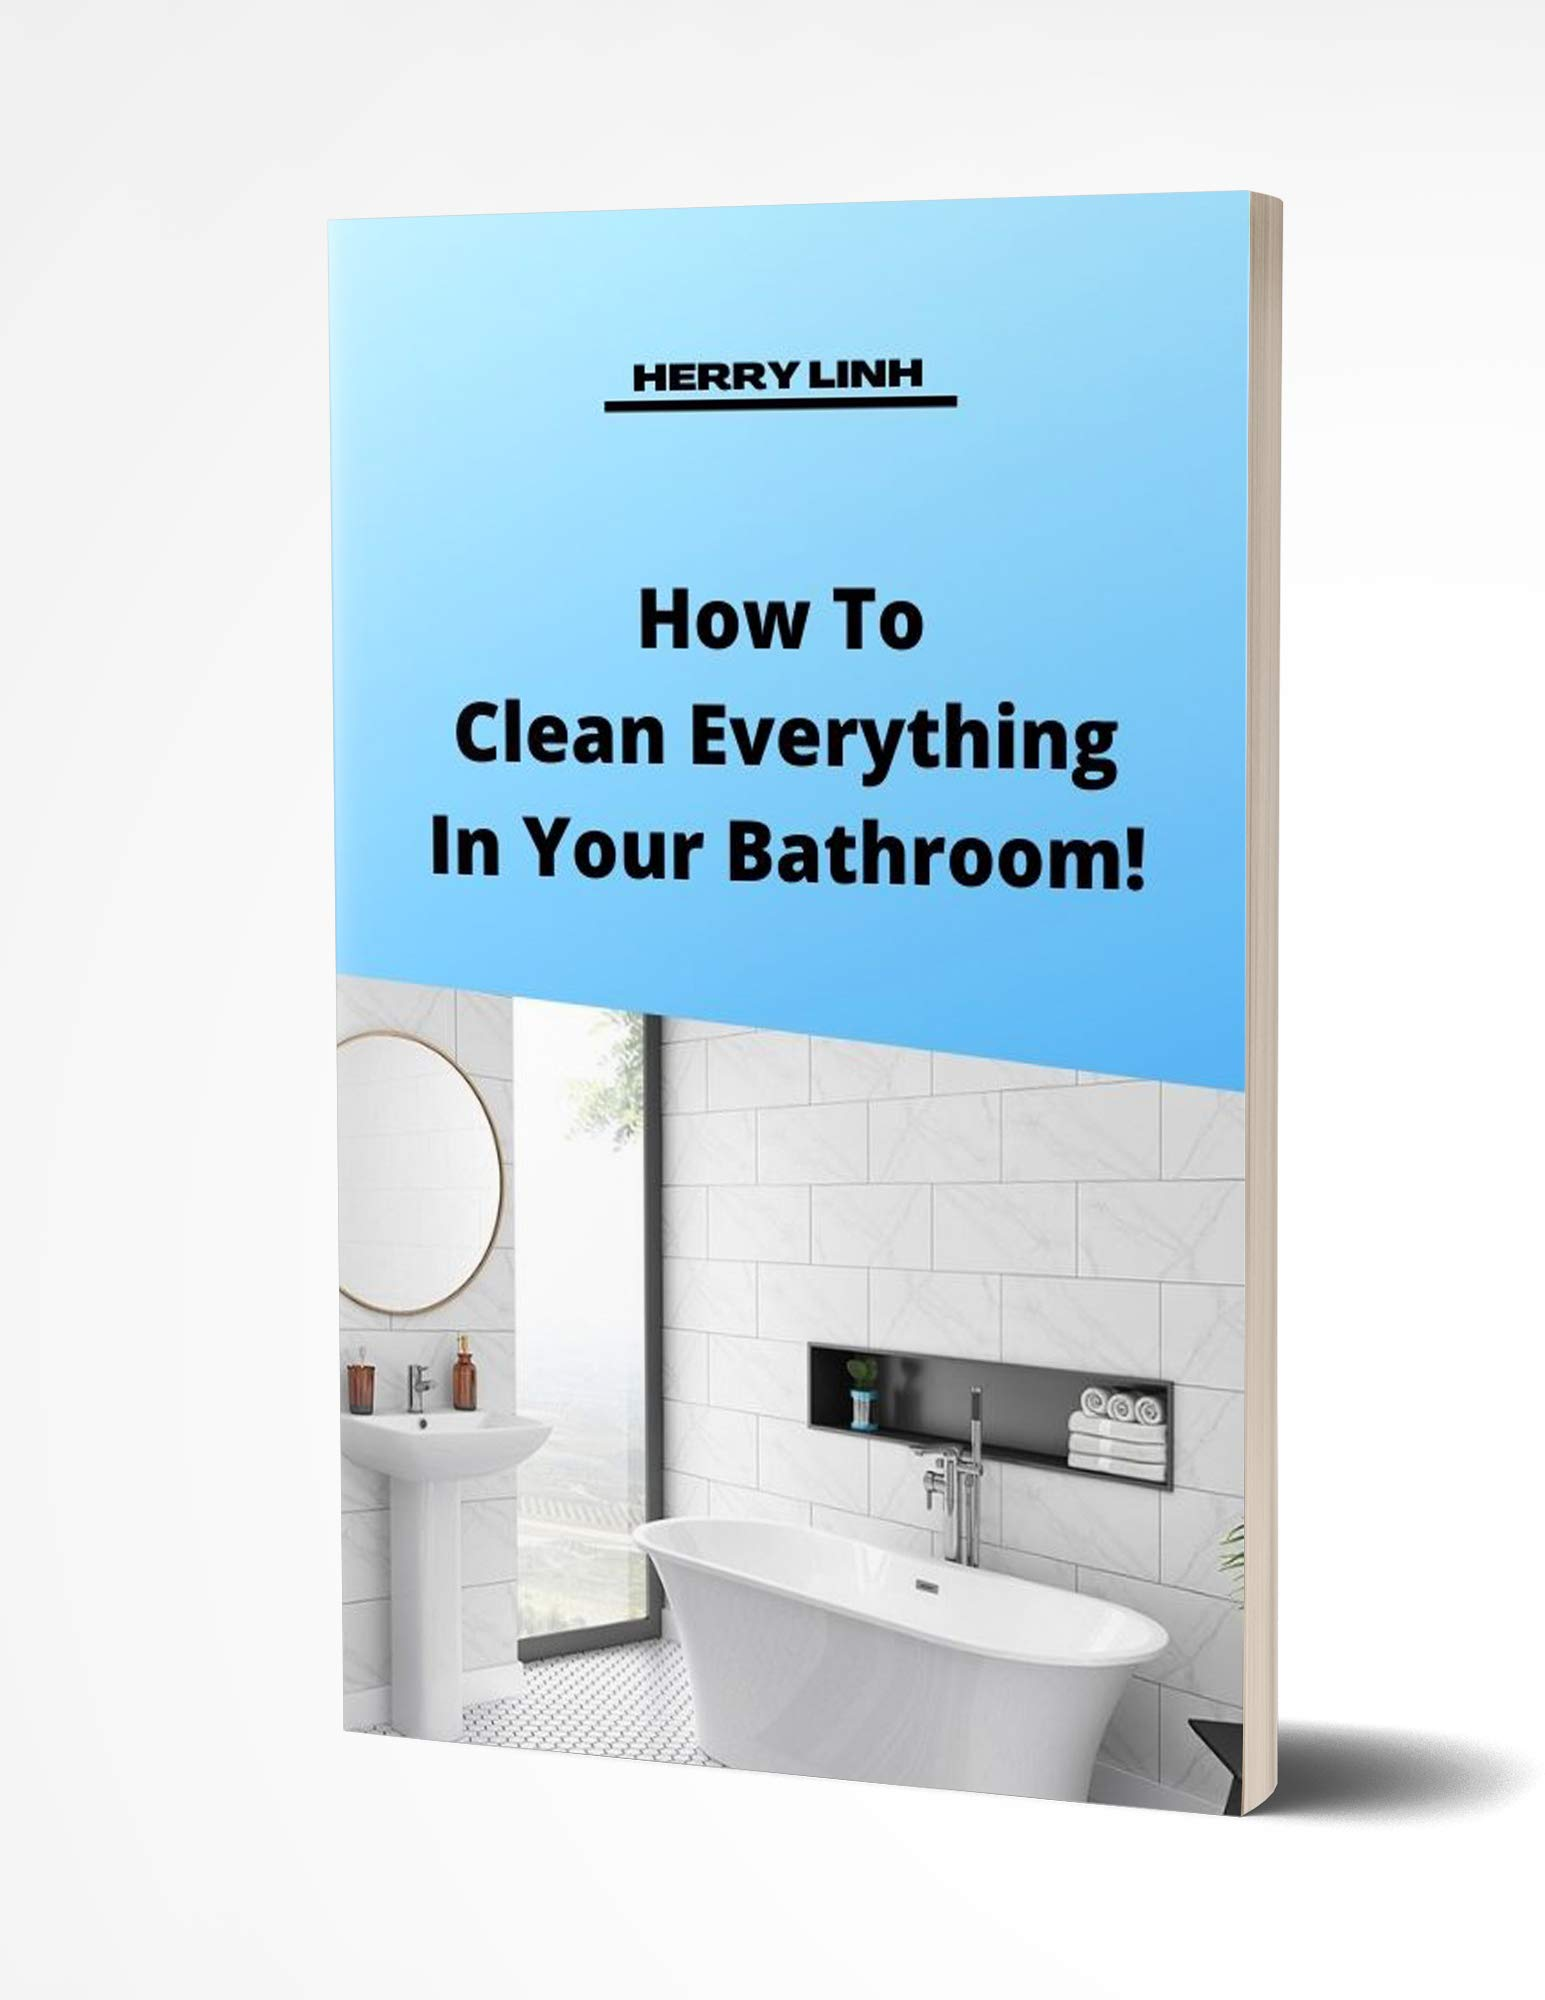 How To Clean Everything In Your Bathroom!